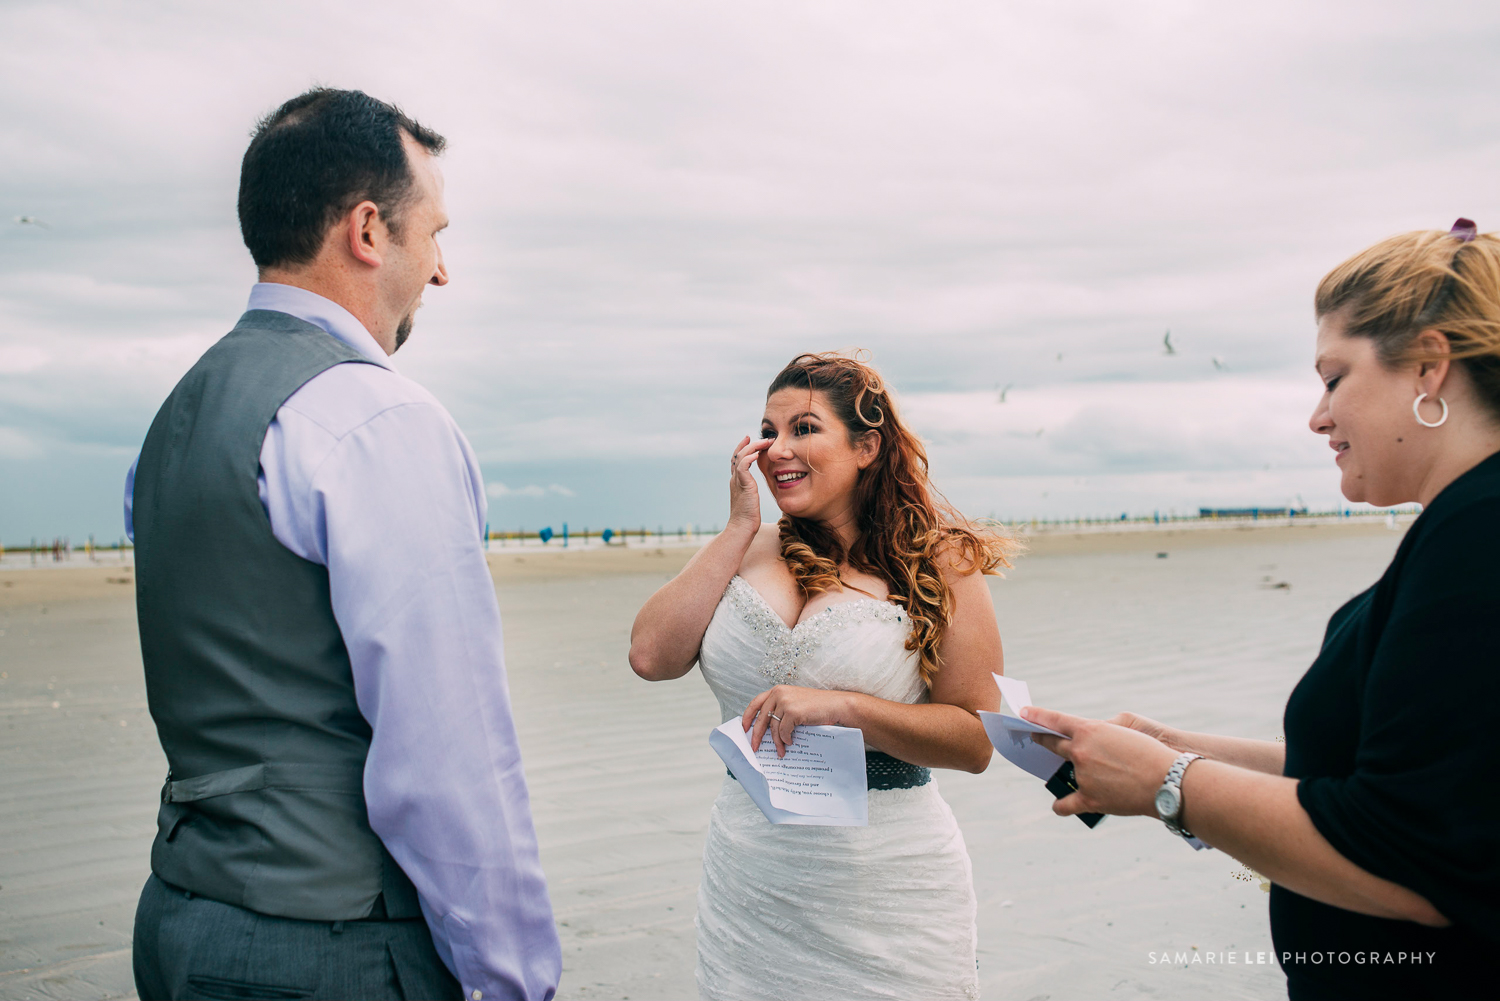 Galveston-elopement-houston-wedding-photographer-34.jpg